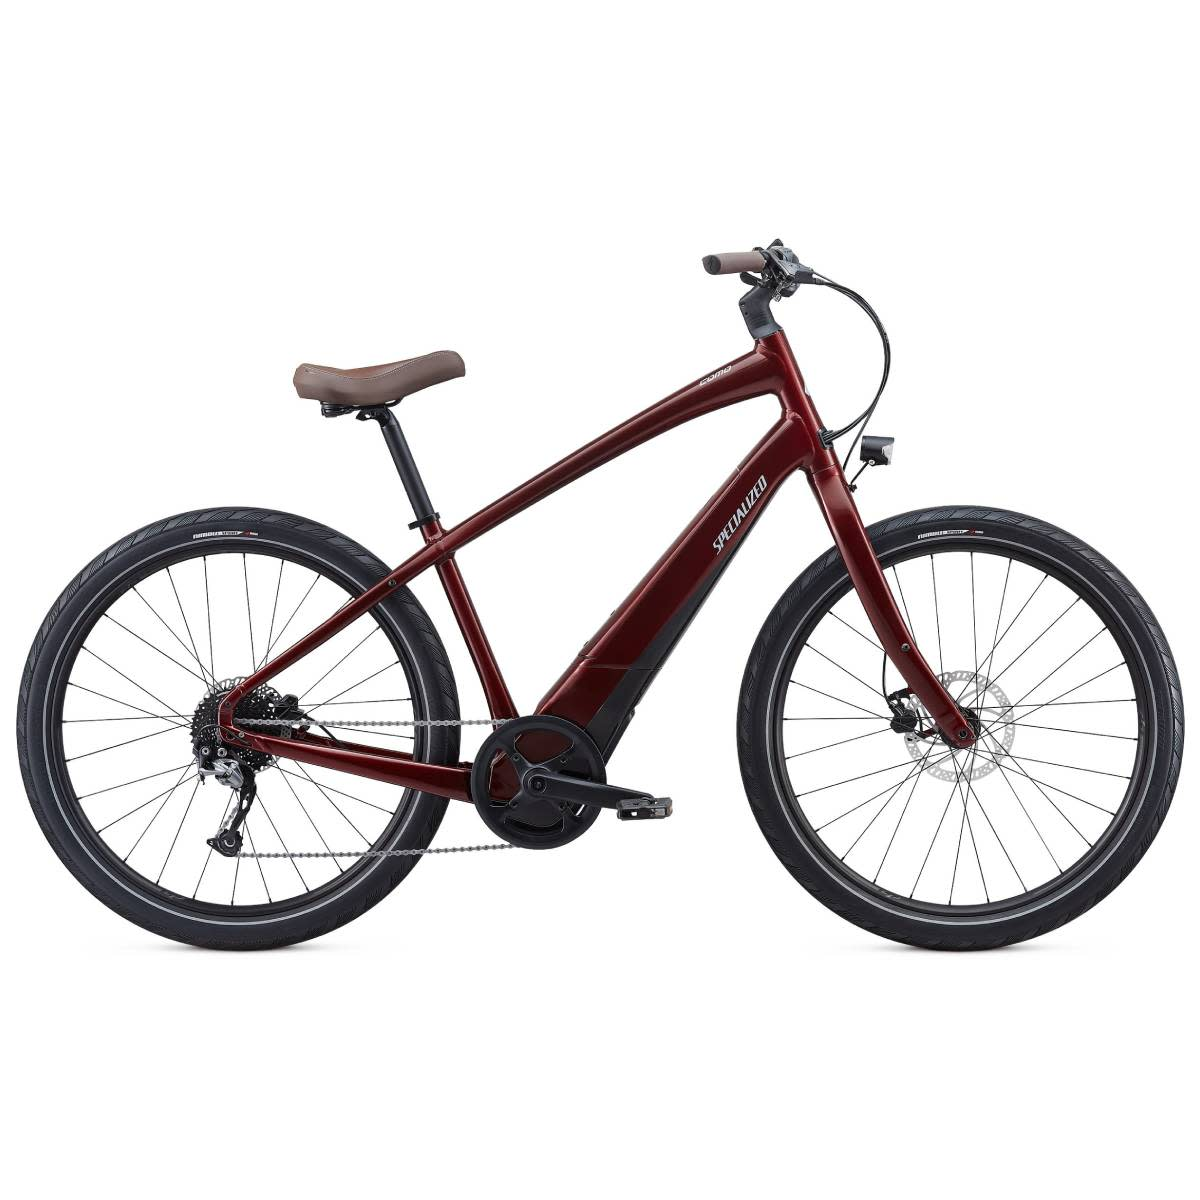 SPECIALIZED COMO 3.0 650B ROUGE